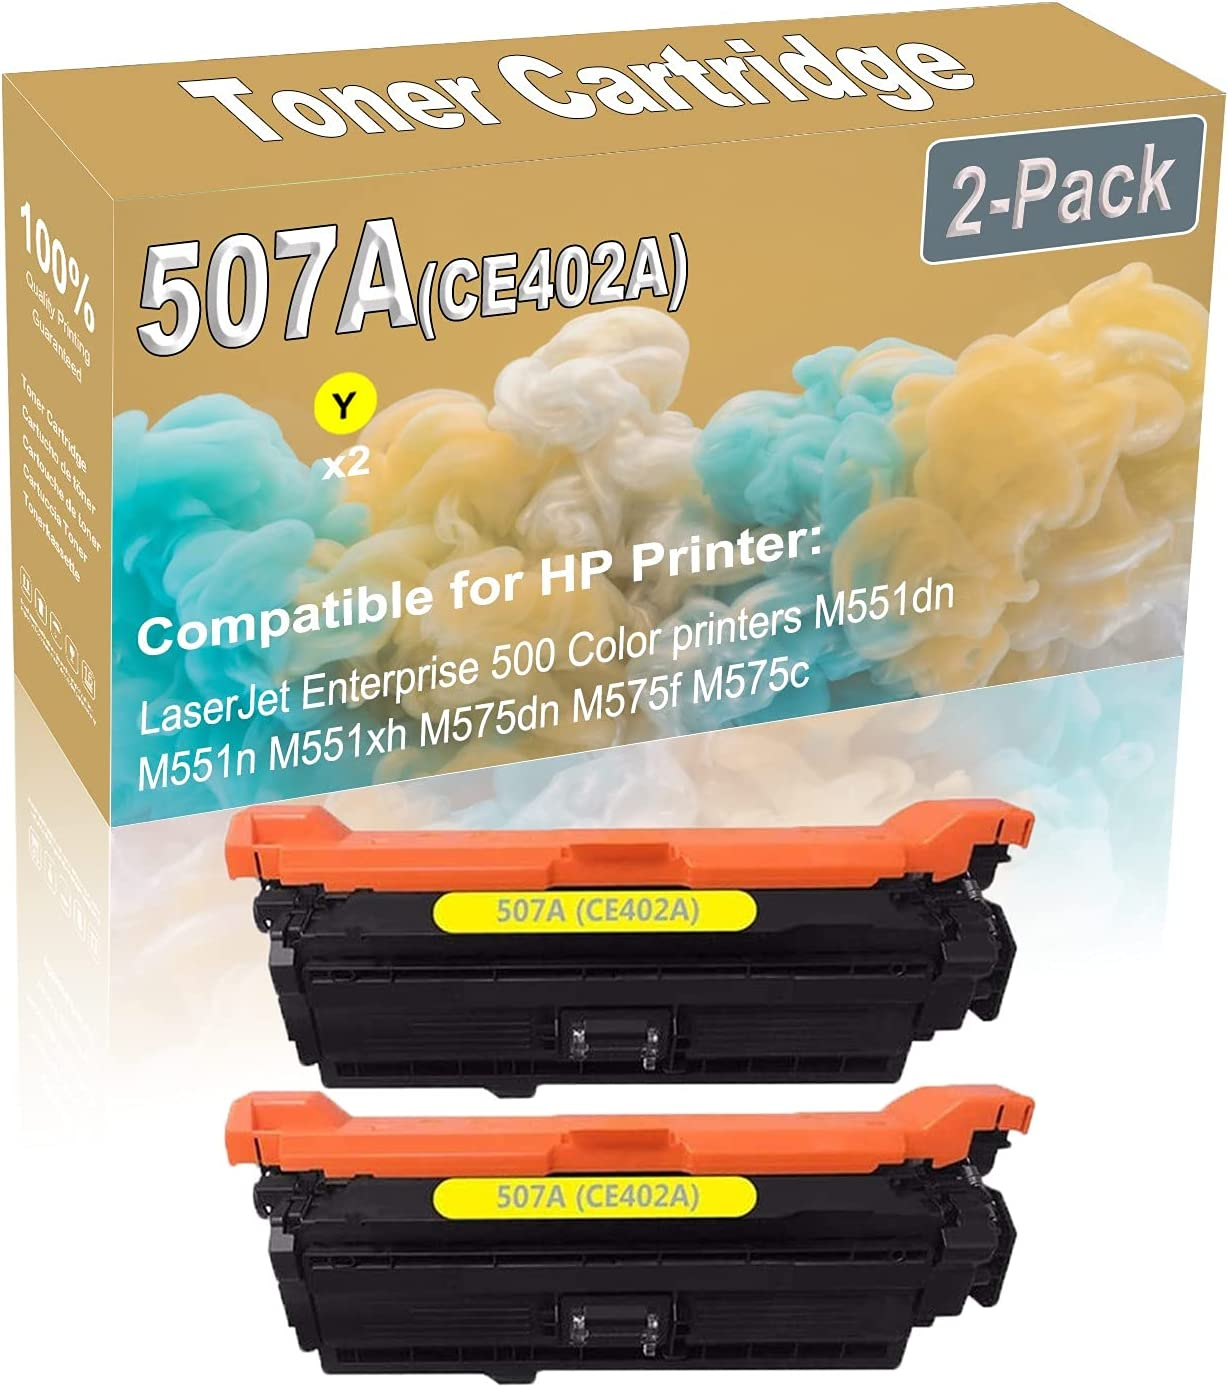 2-Pack (Yellow) Compatible High Yield 507A (CE402A) Printer Toner Cartridge use for HP Enterprise 500 Color M551dn Printers